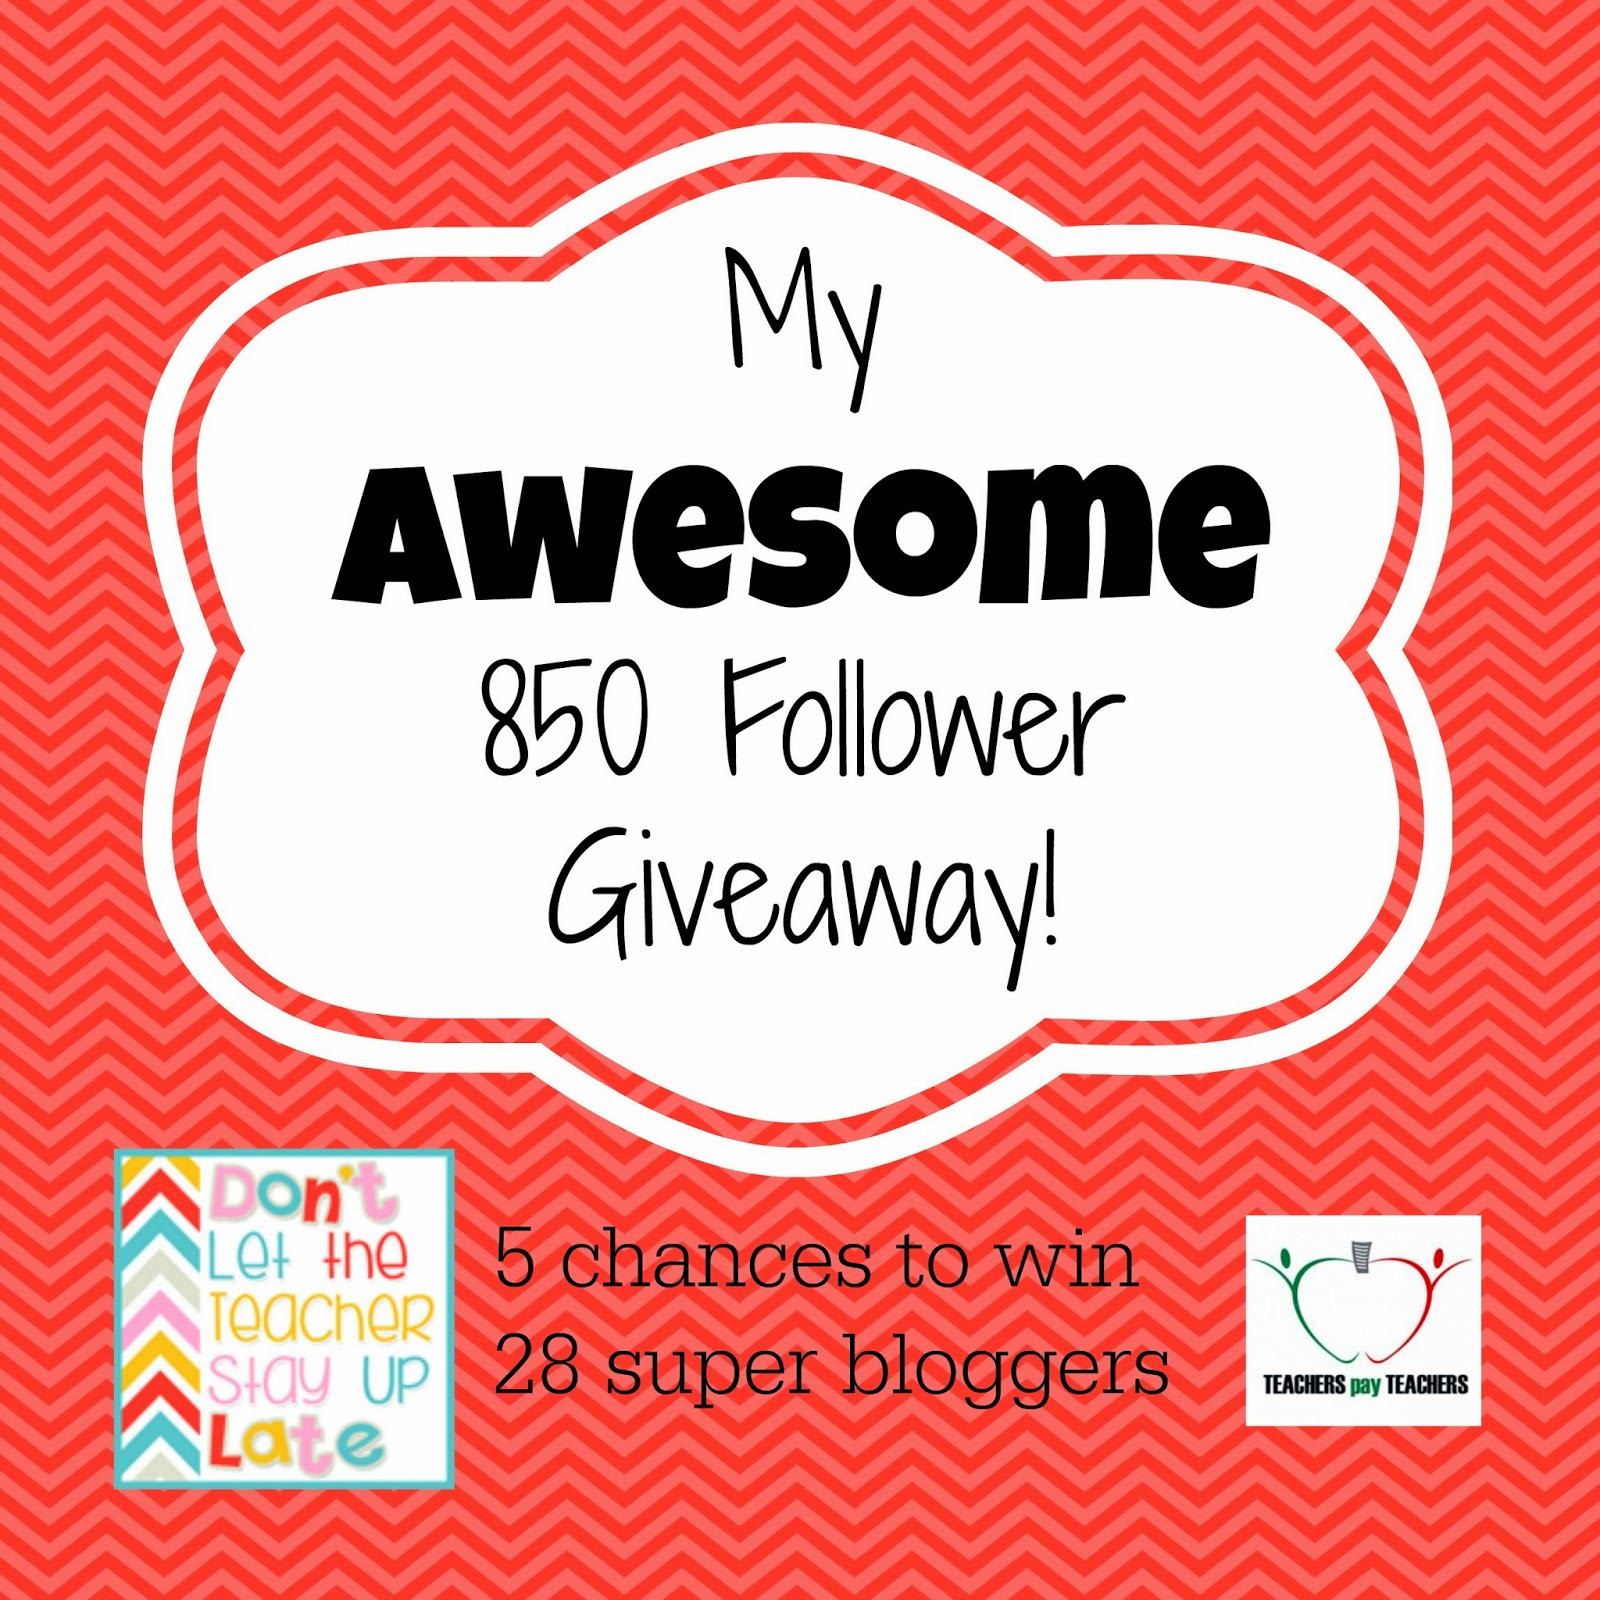 http://dontlettheteacher.blogspot.com/2014/05/850-follower-giveaway.html